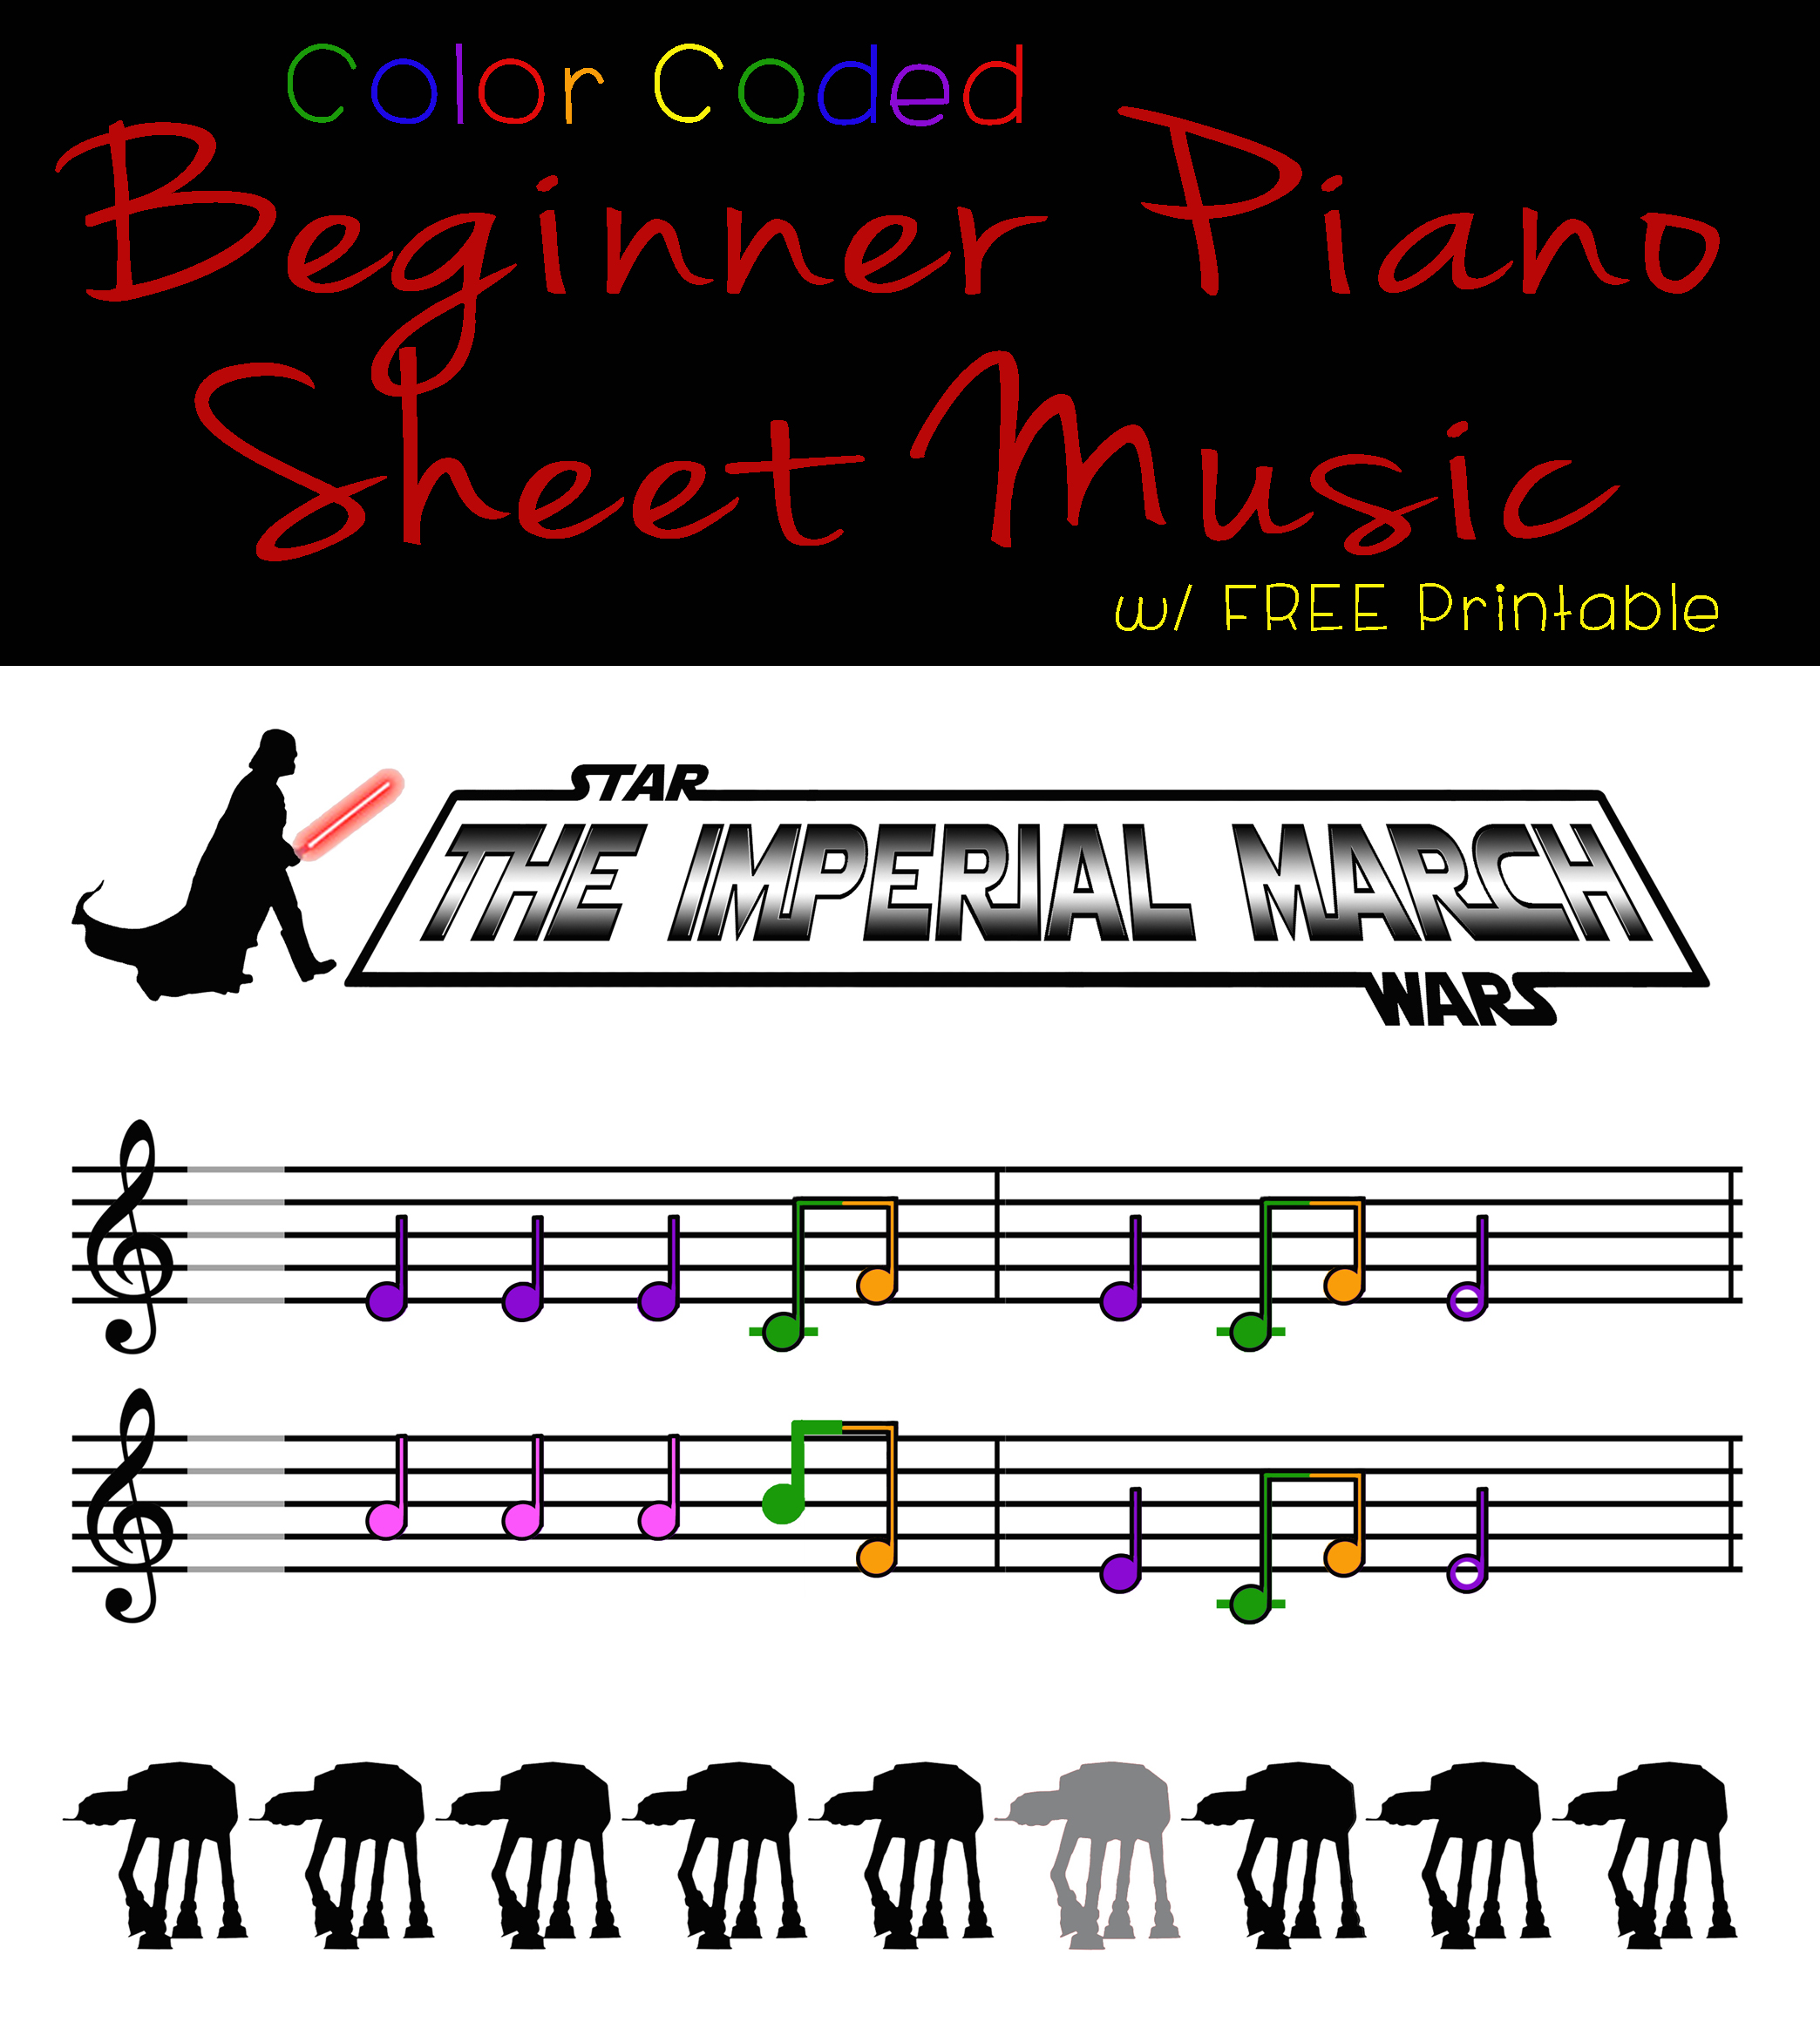 Color-Coded Beginner Piano Sheet Music for Kids - Star Wars The Imperial March - projectsinparenting.com